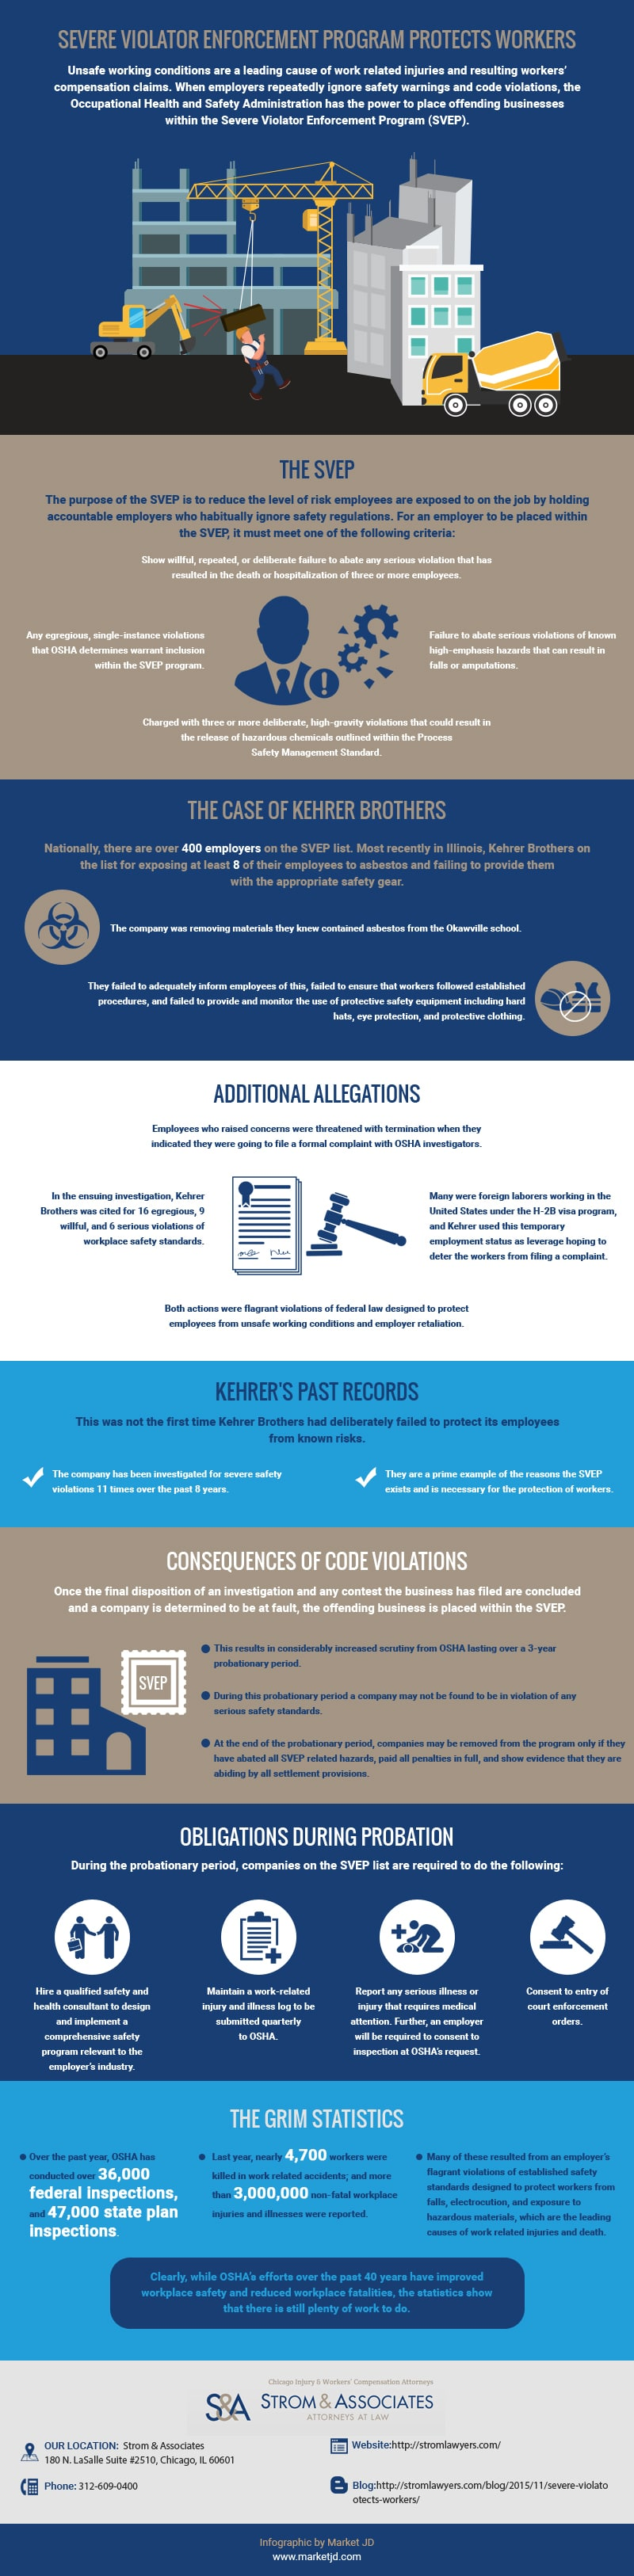 Severe violator enforcement program infographic